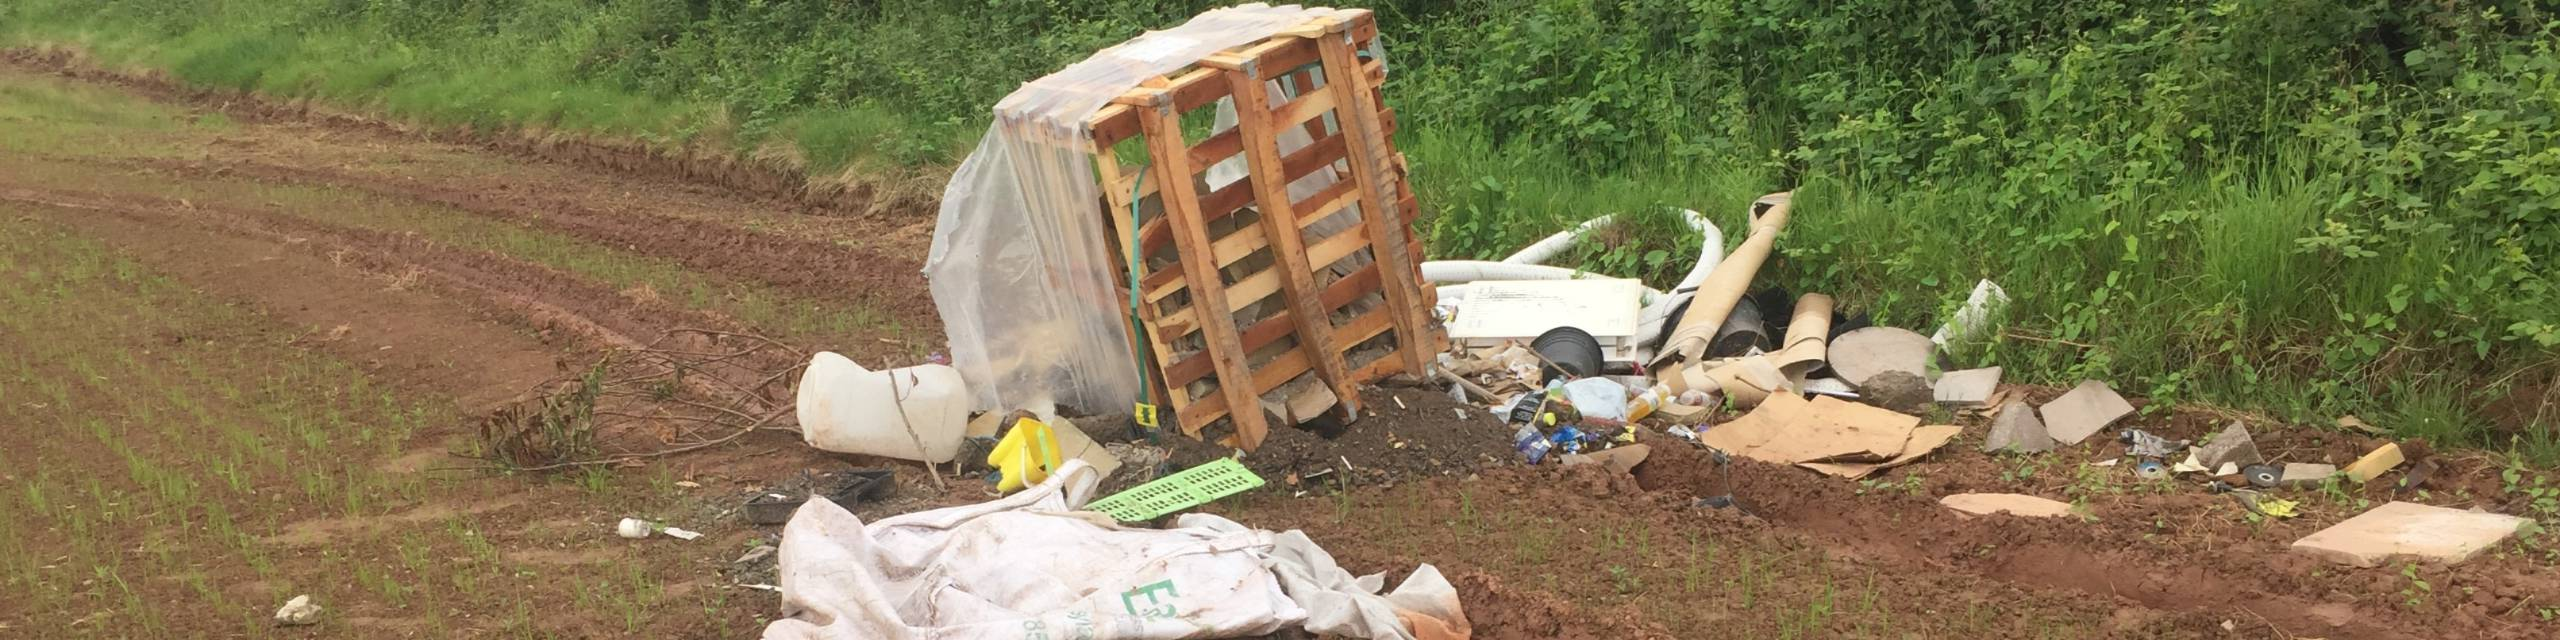 Business waste fly tipped in a field